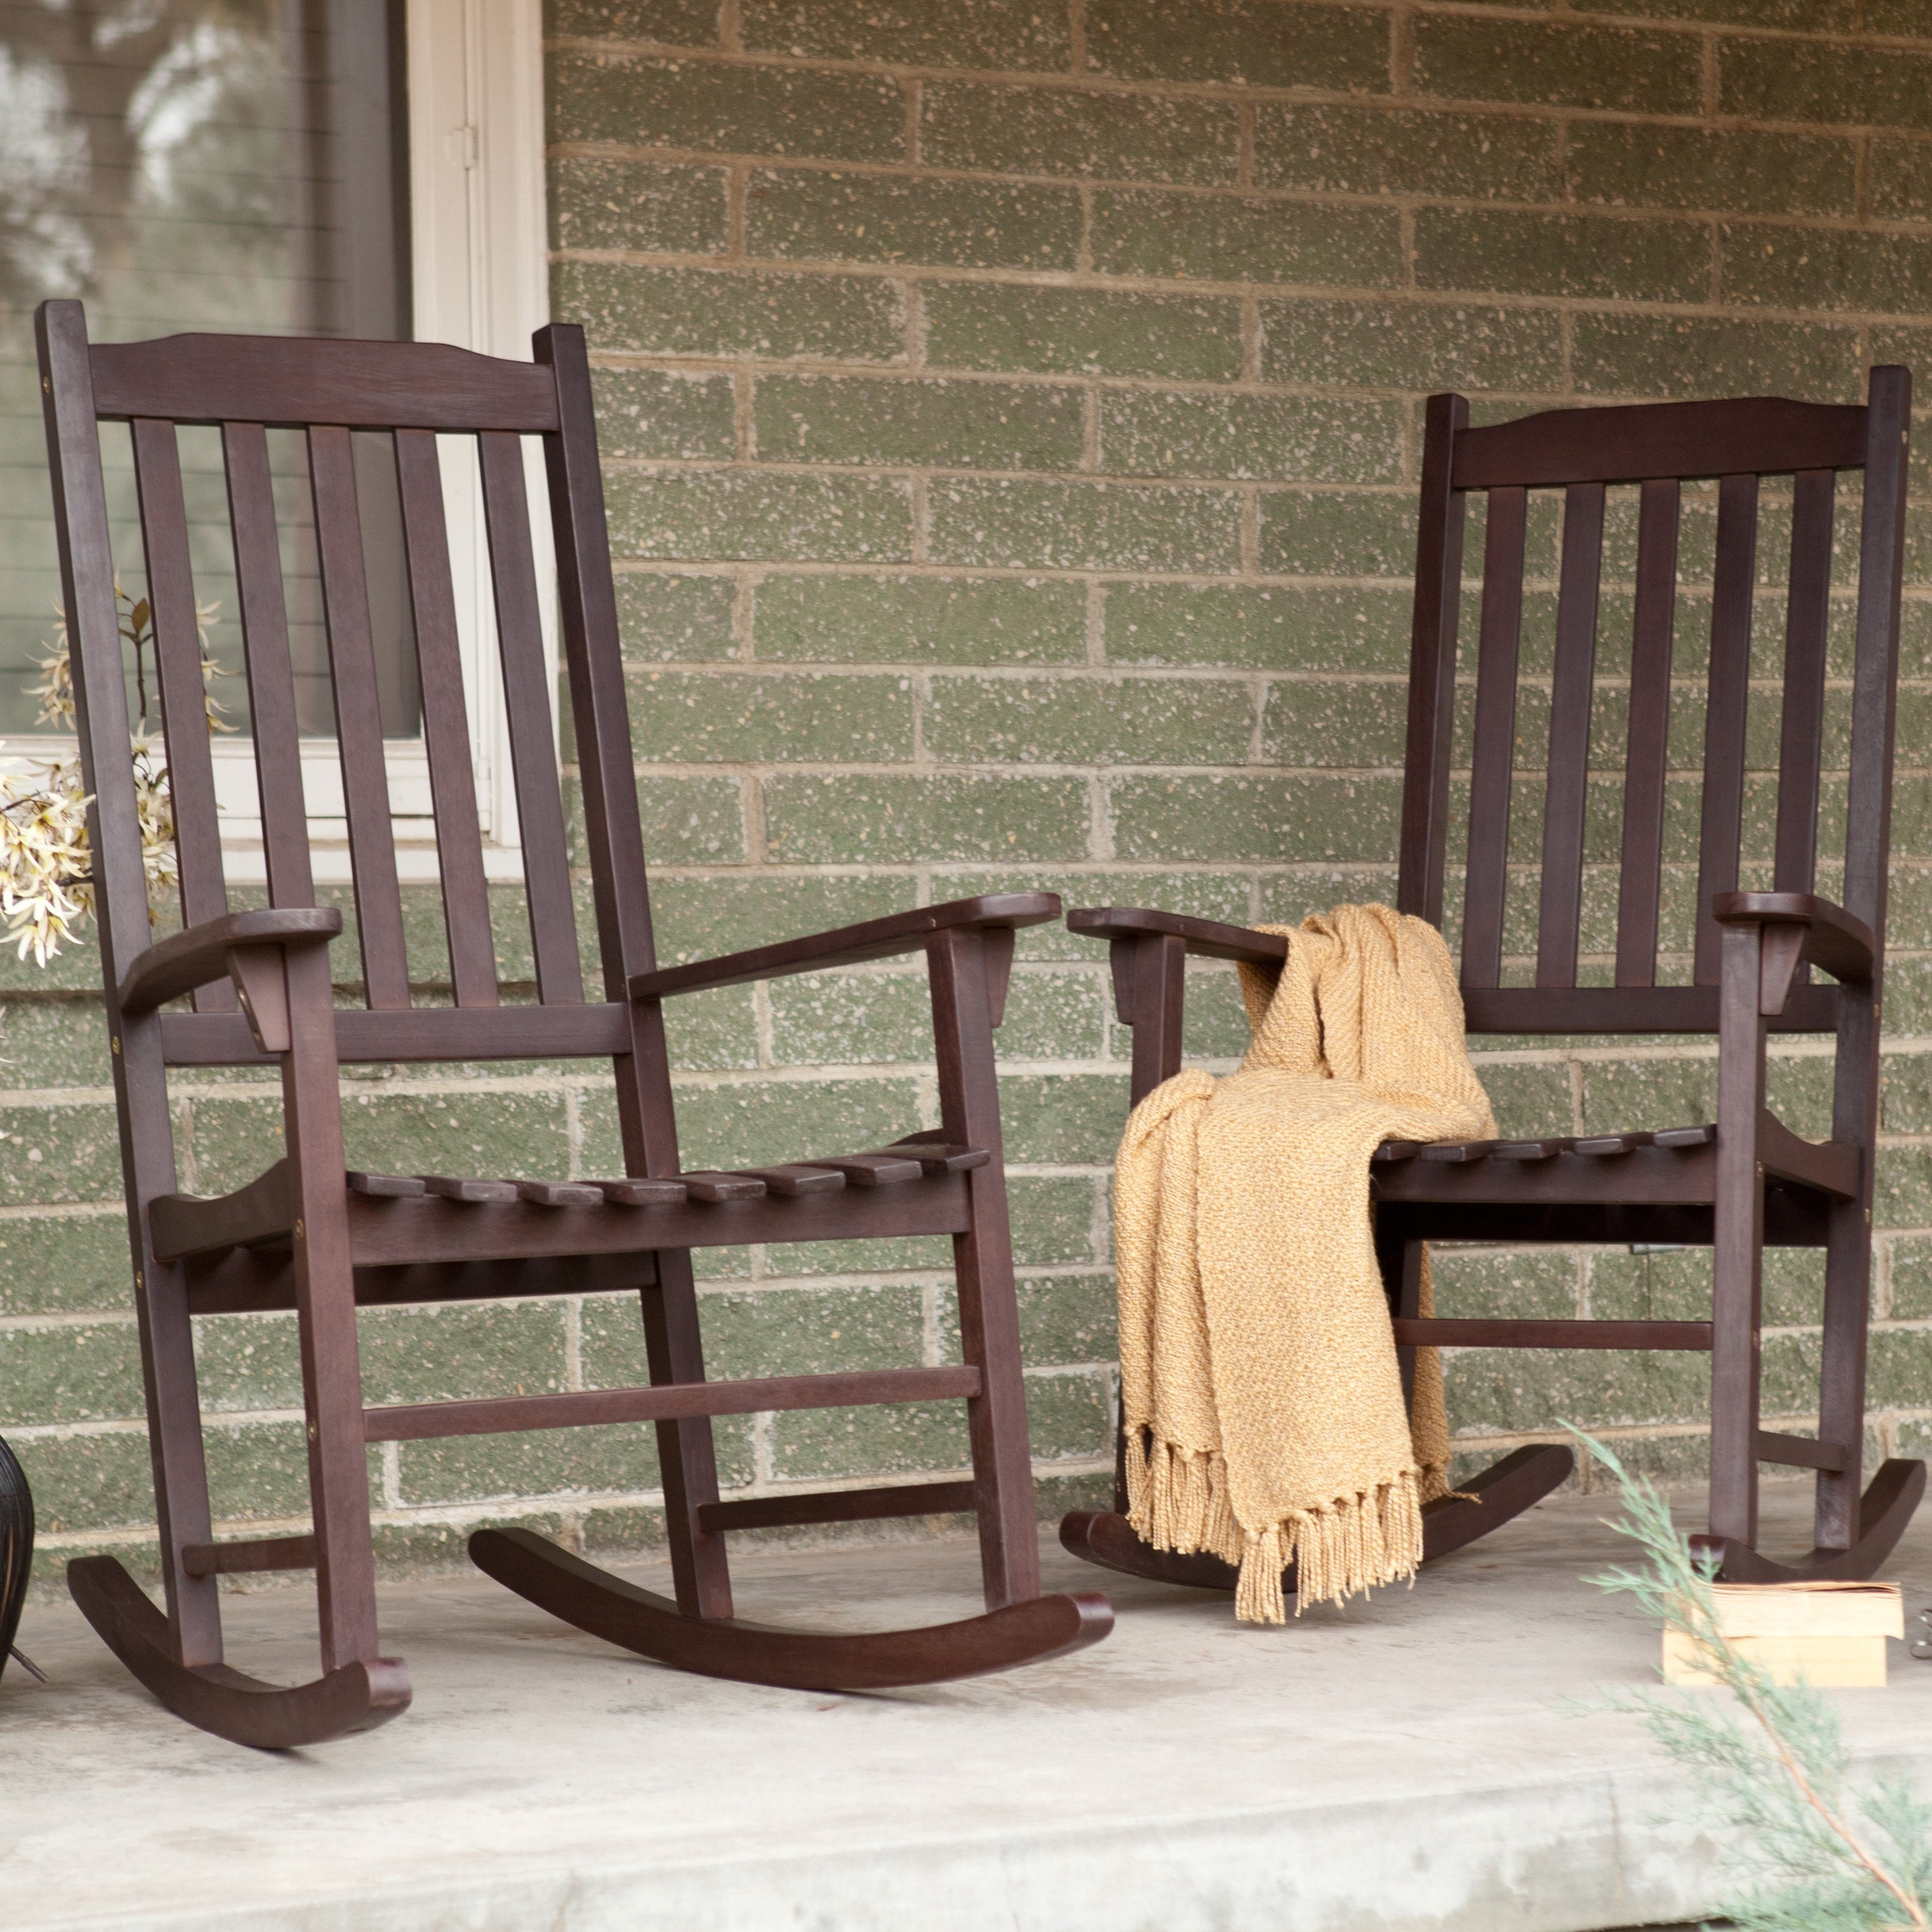 Preferred Unique Outdoor Rocking Chairs Inside Coral Coast Indoor/outdoor Mission Slat Rocking Chairs – Dark Brown (View 10 of 20)